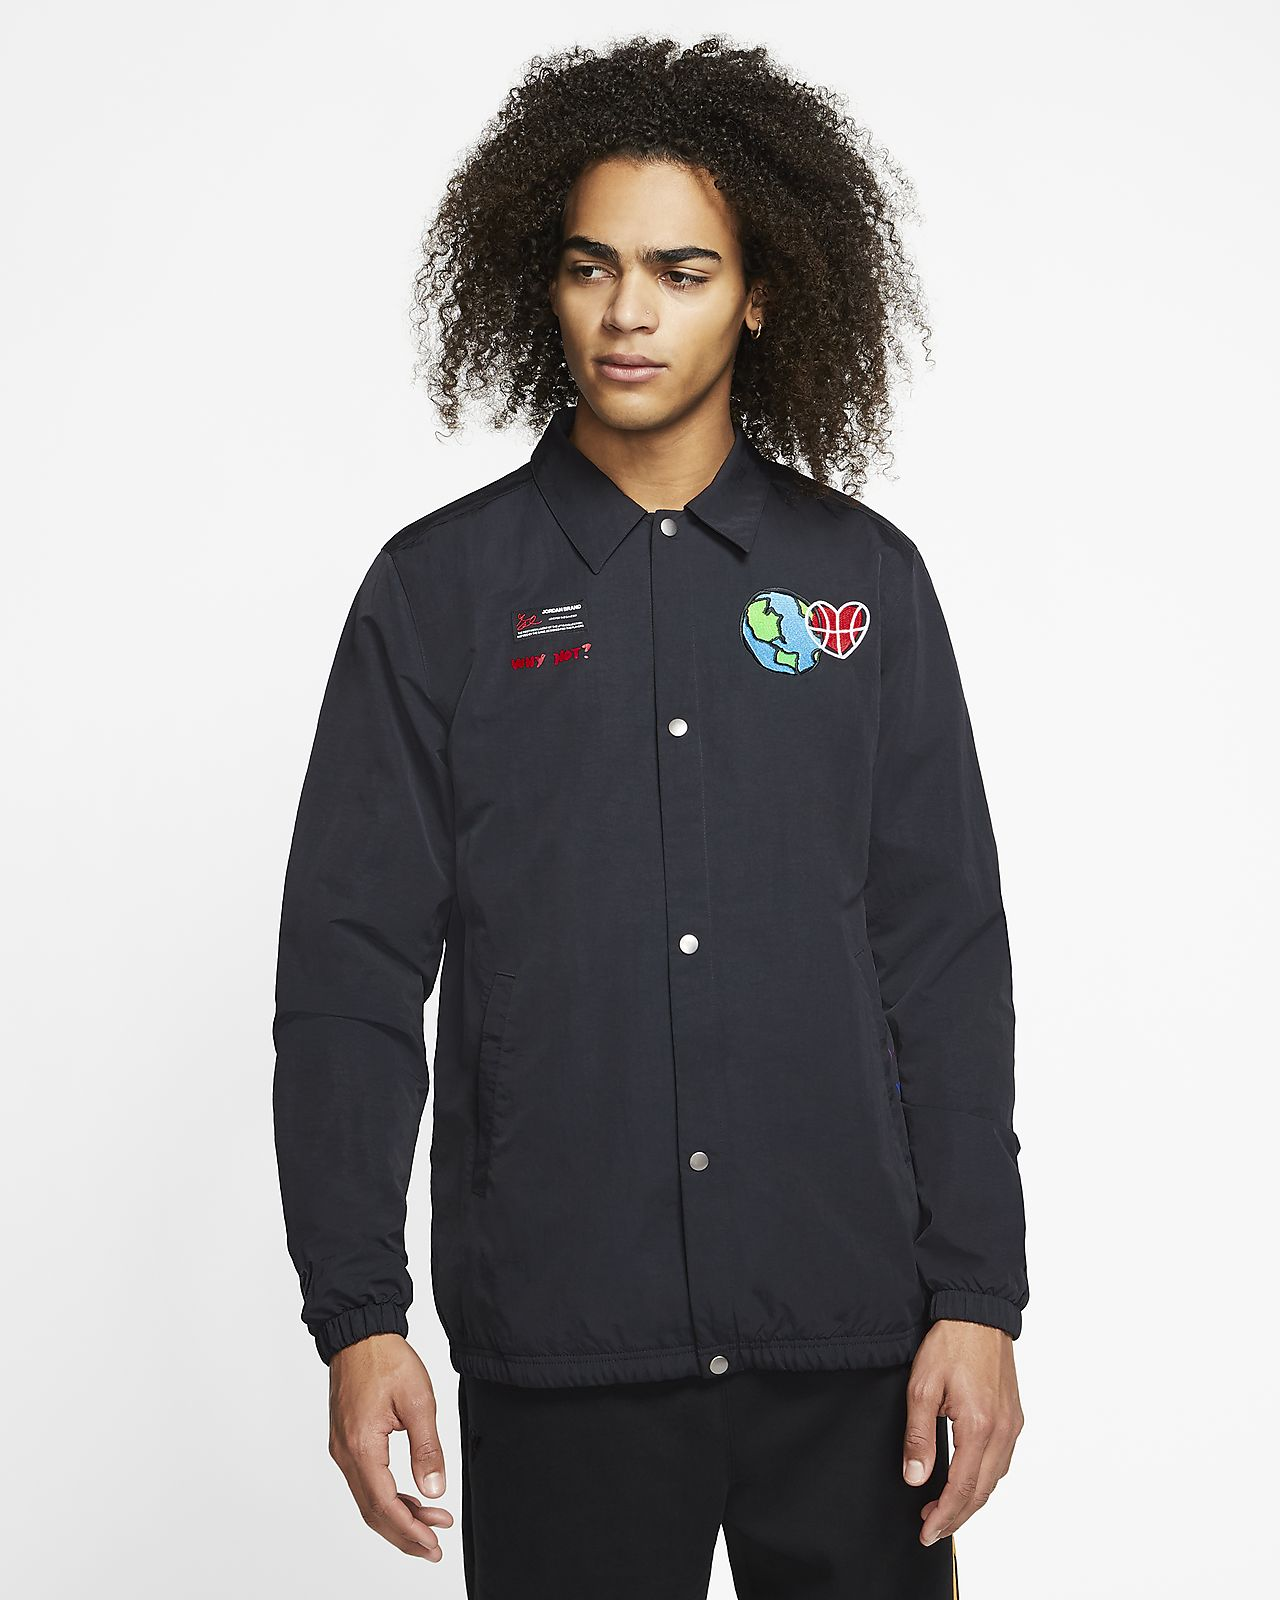 Jordan Why Not? Men's Jacket